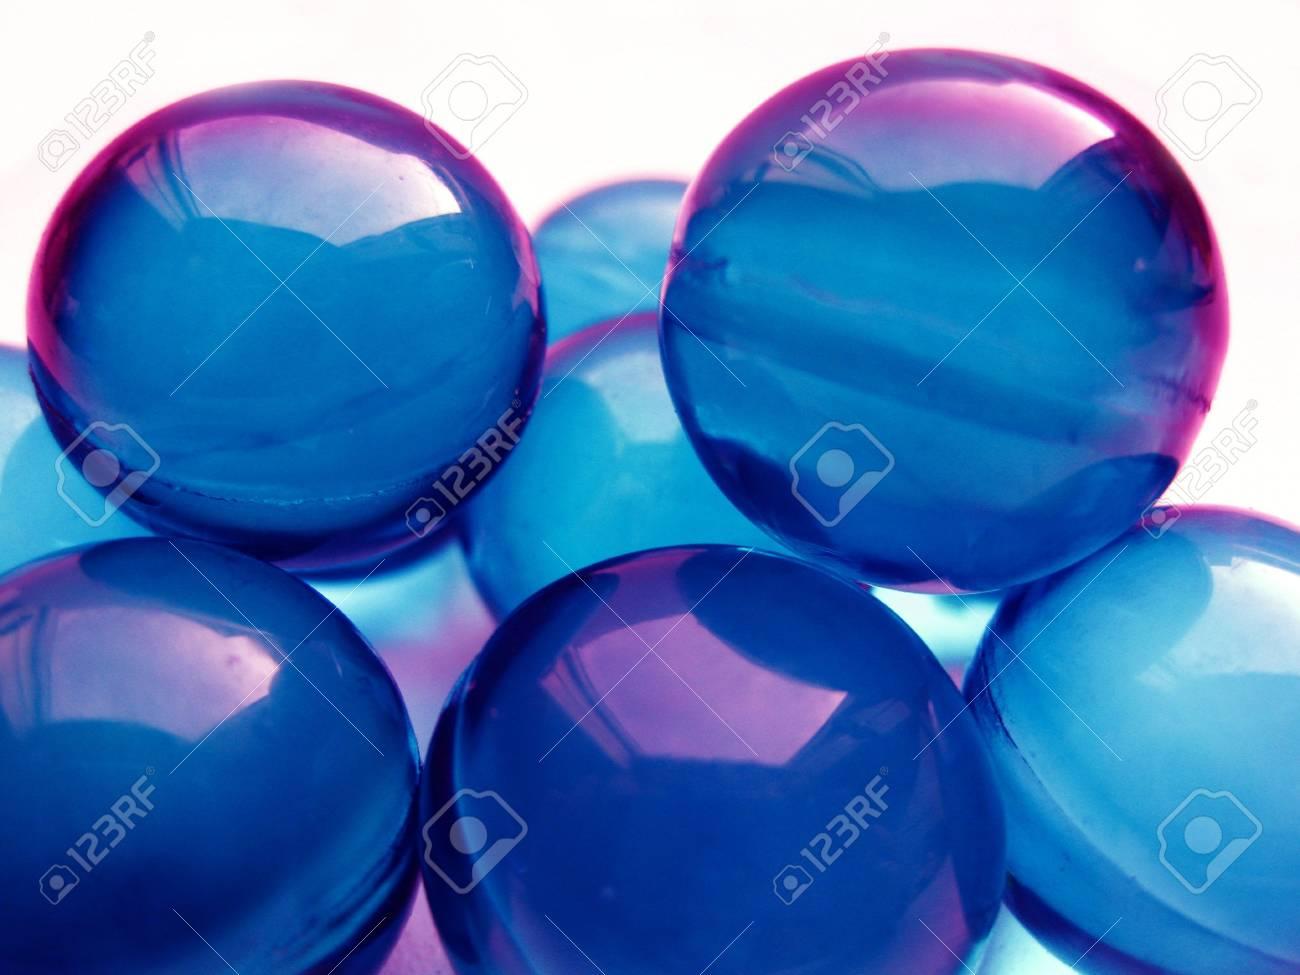 blue marbles Stock Photo - 4168330